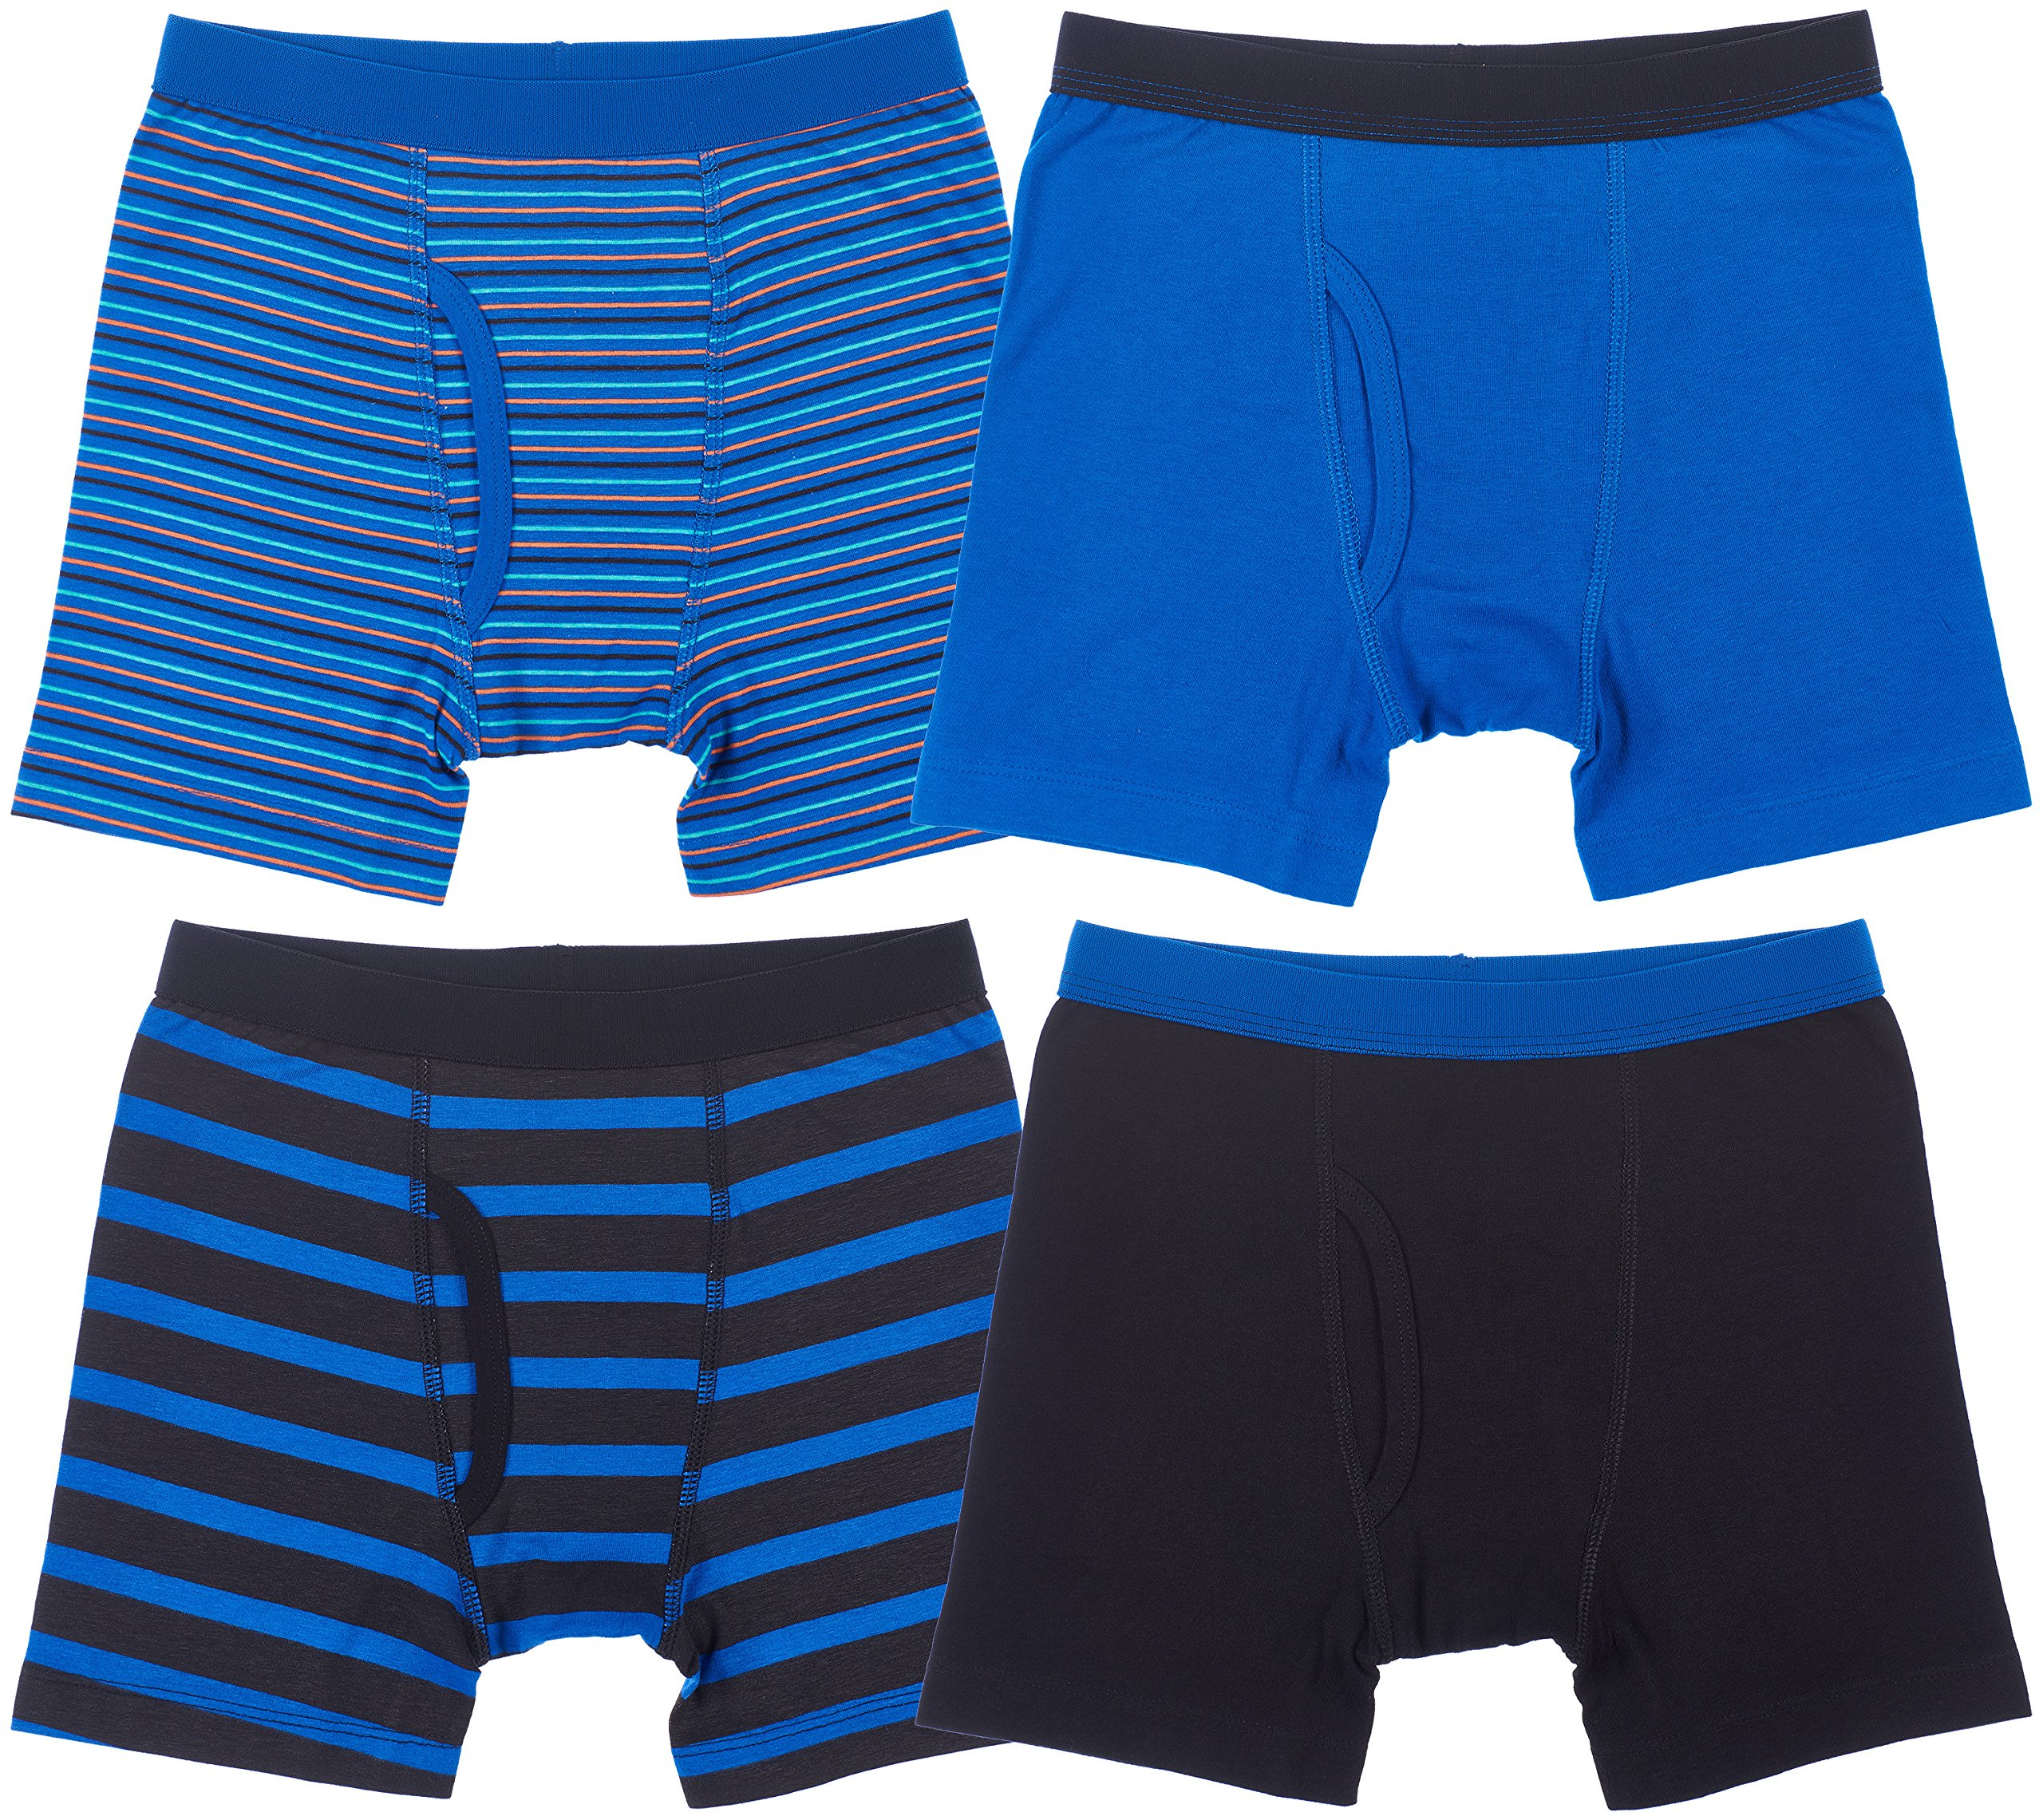 Trimfit 4-Pack Boys Boxer Briefs (Pack of 4) S (4-6)